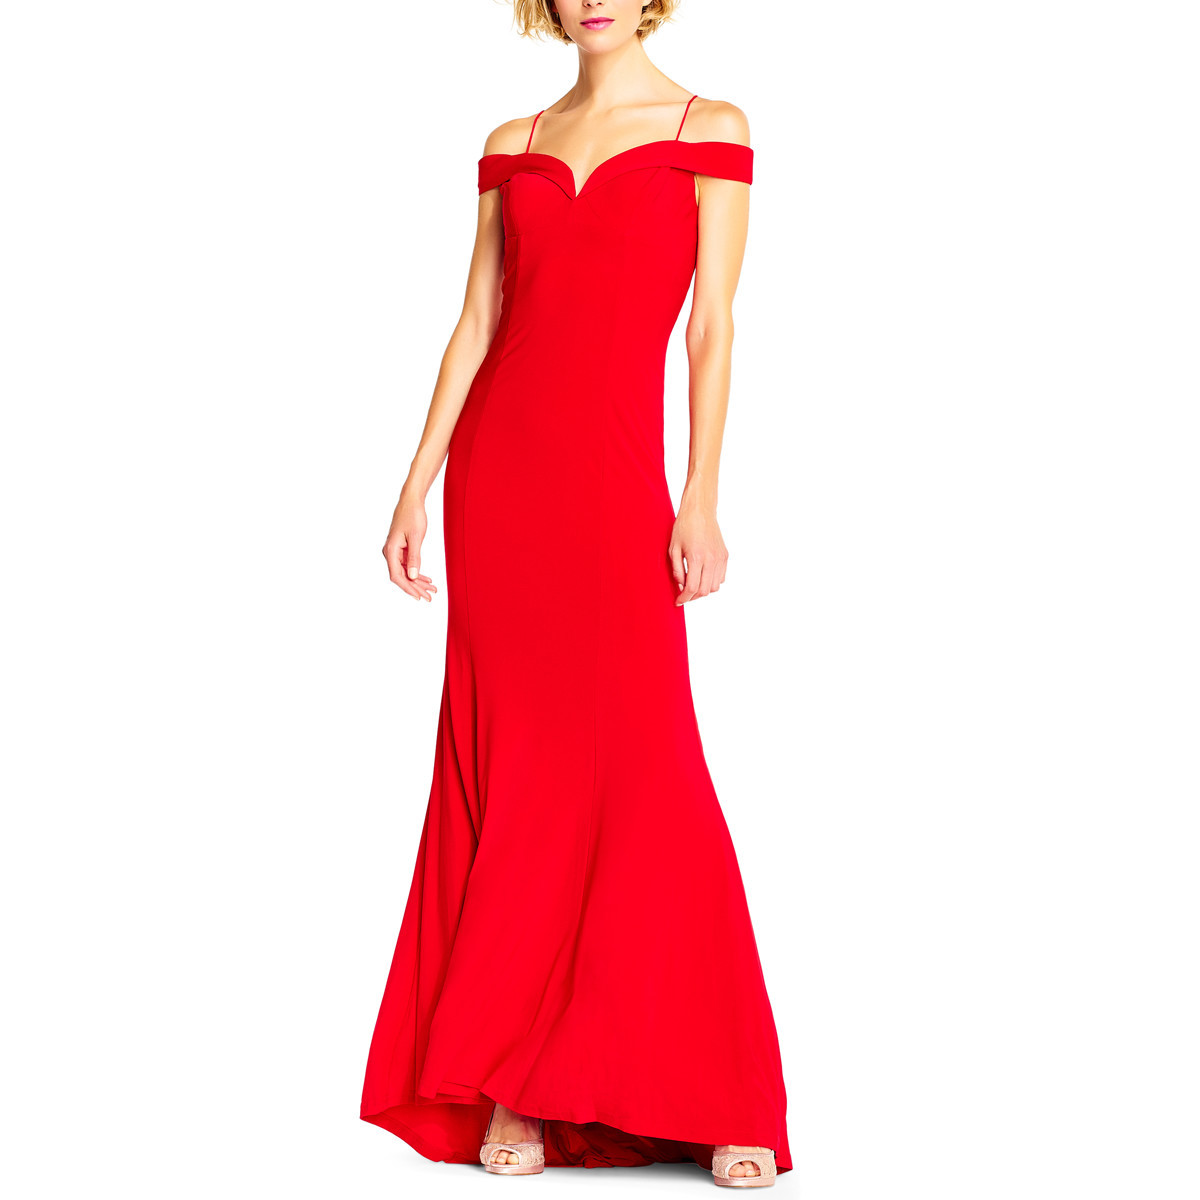 Woman wearing bold mother of the bride dress photo